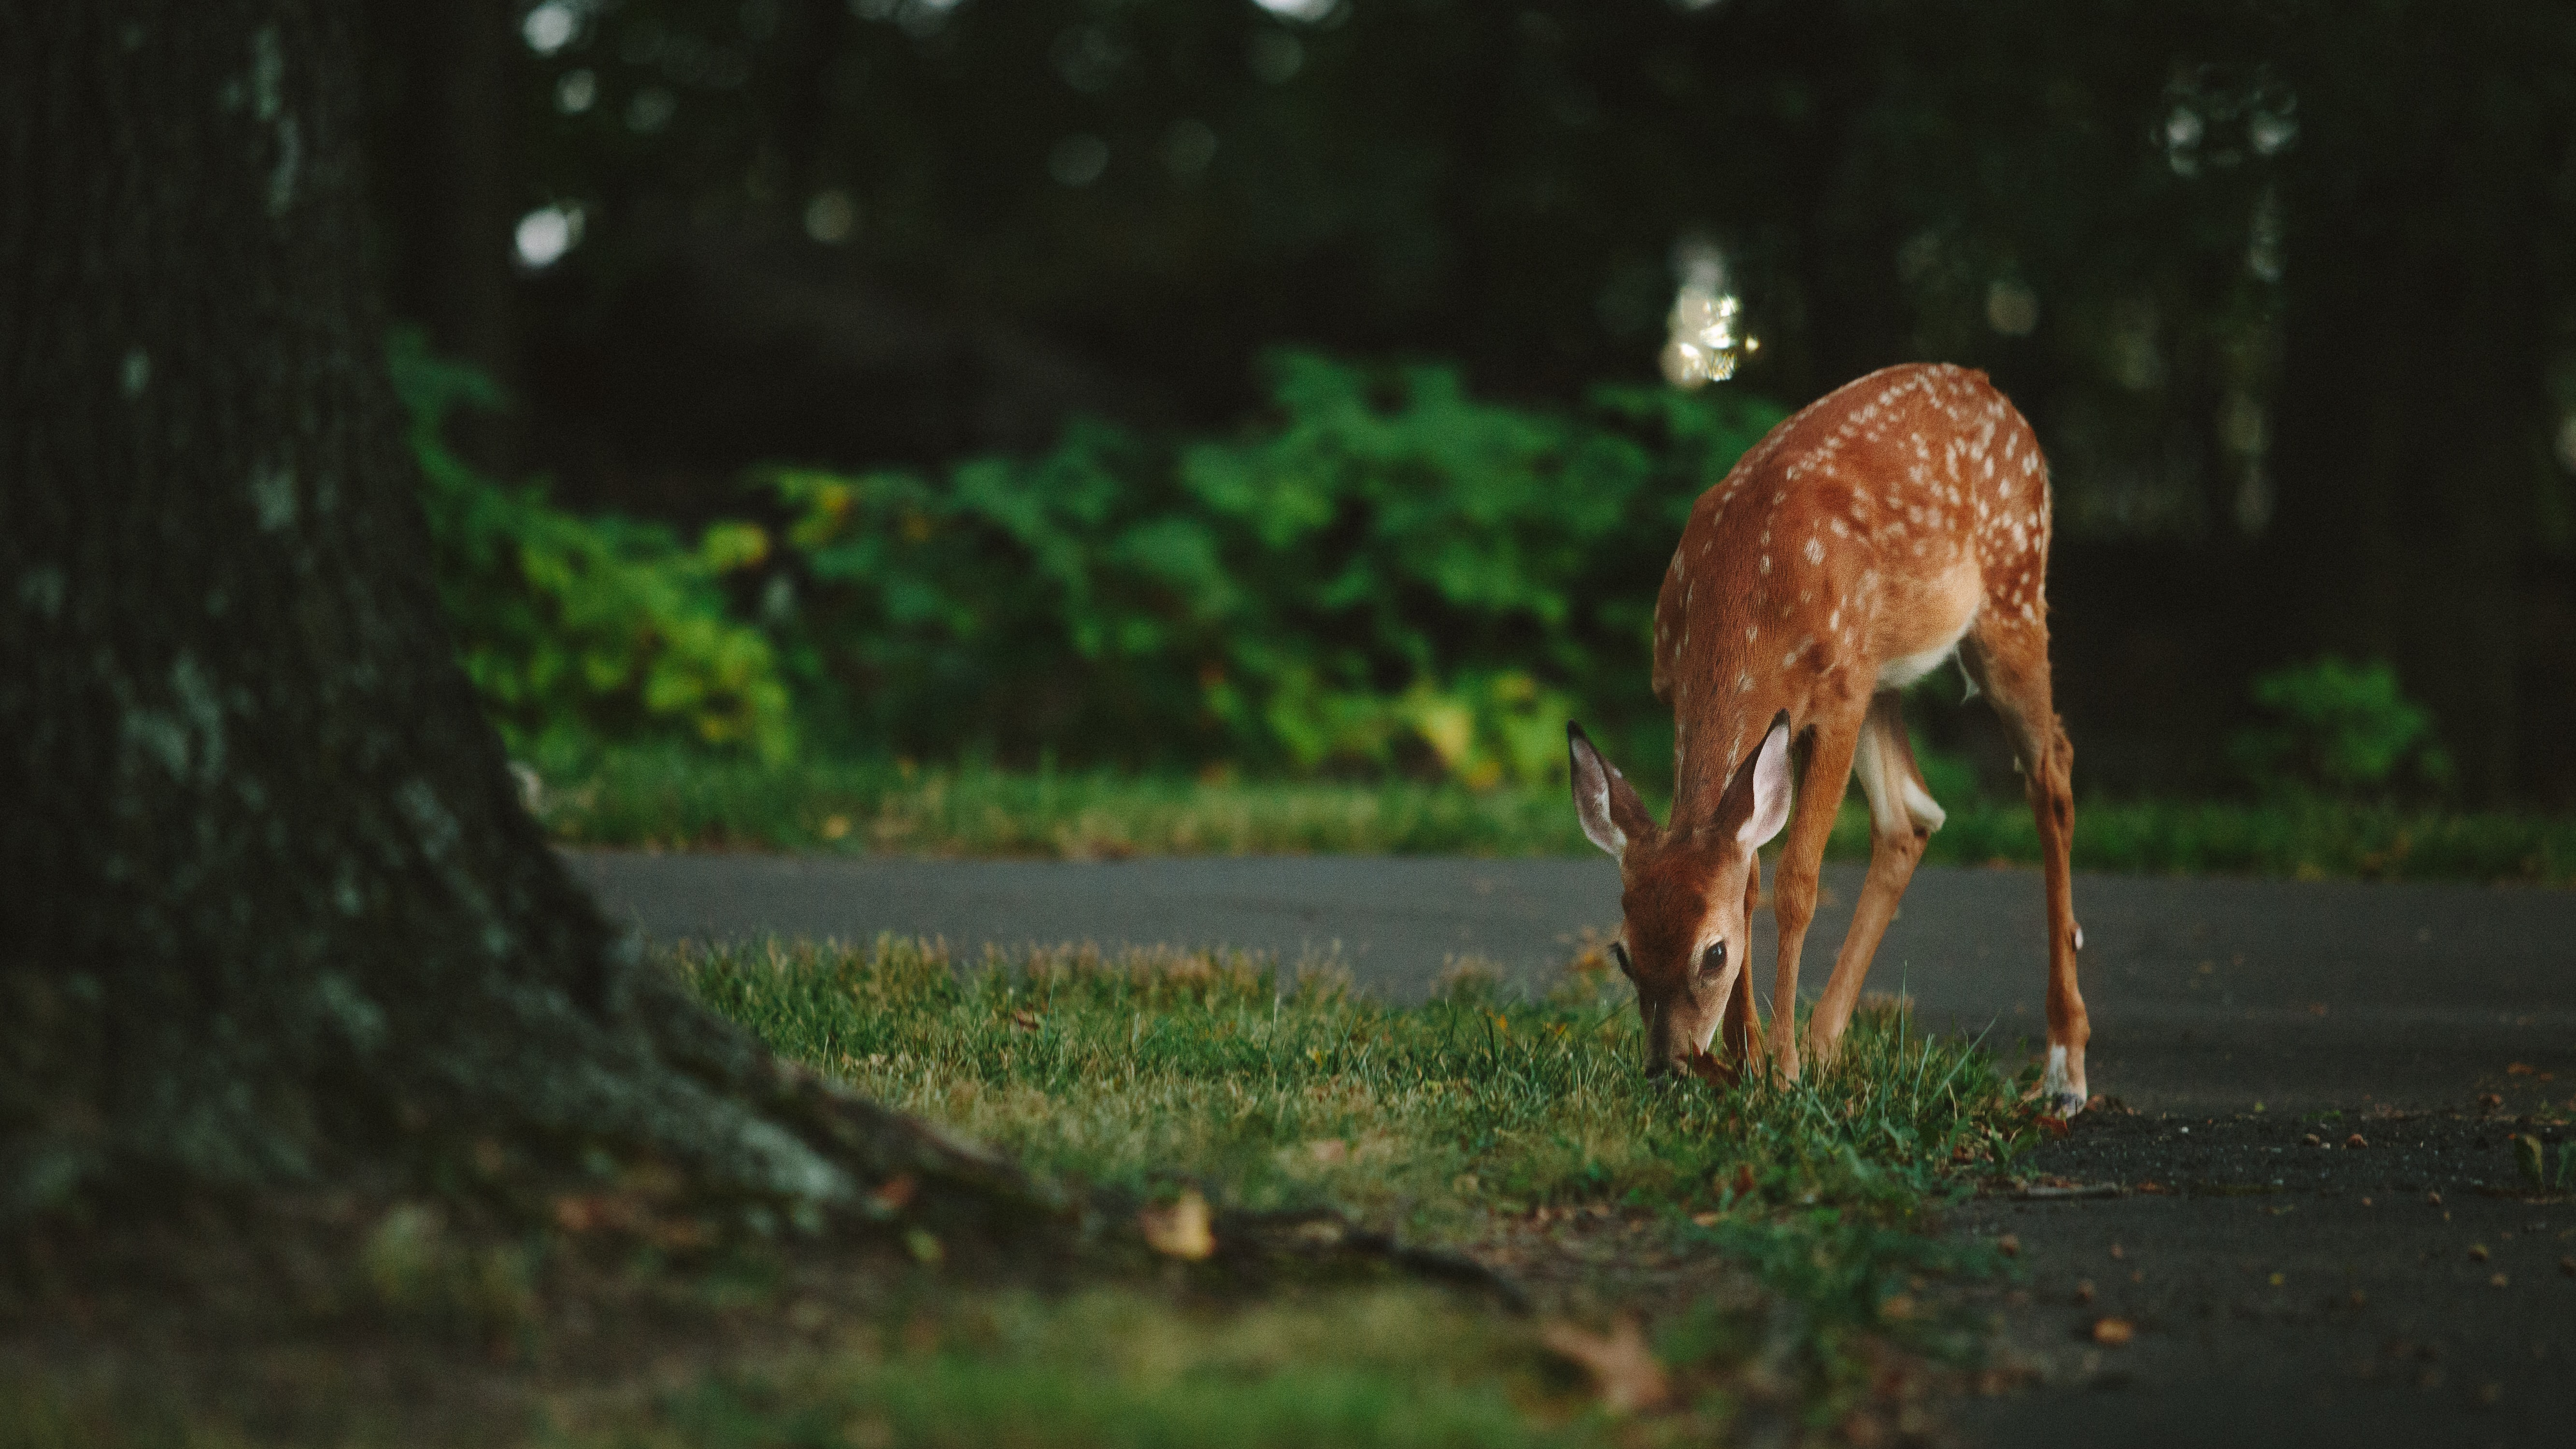 A roe deer grazing on grass next to a forest road